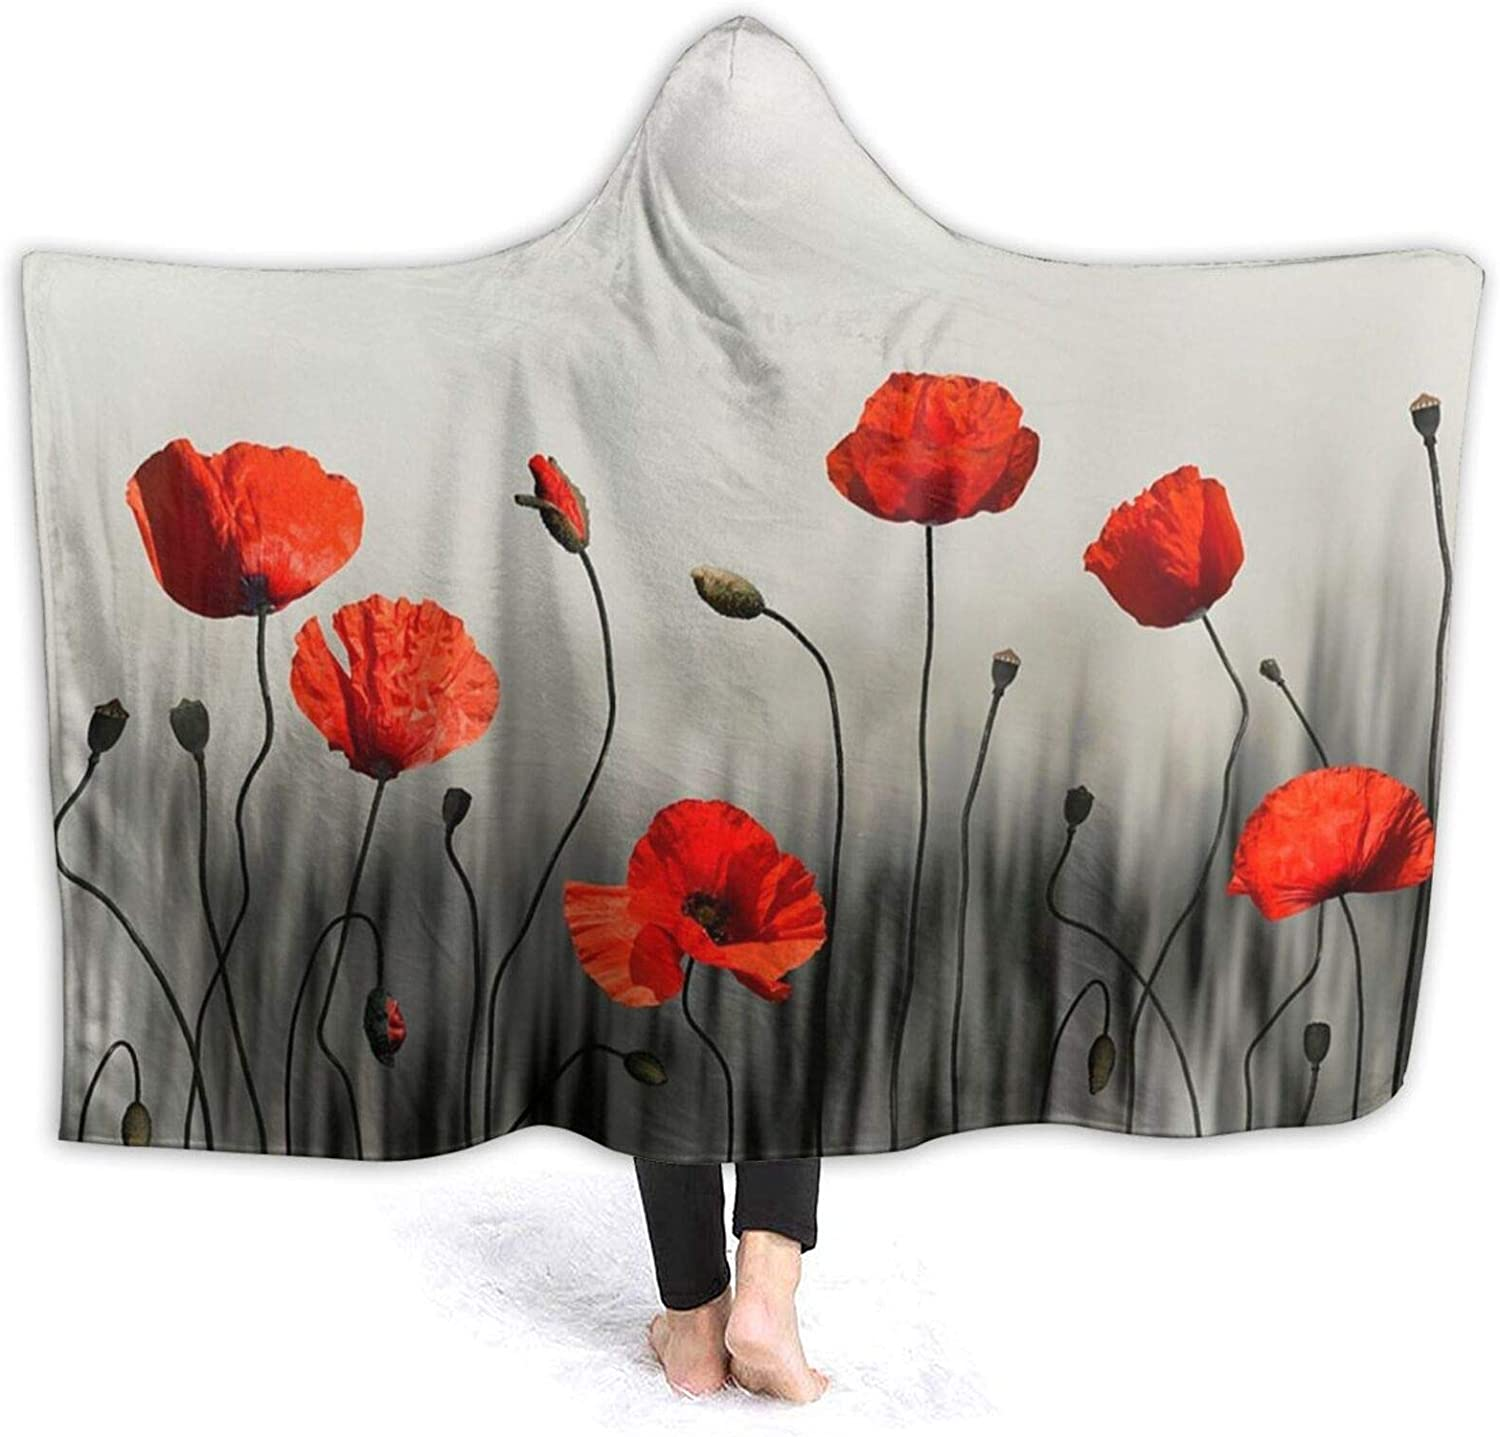 Cozy Hooded Blanket Red Poppy Oklahoma City Mall Flowers Plush Manufacturer direct delivery Art Flann Super Soft